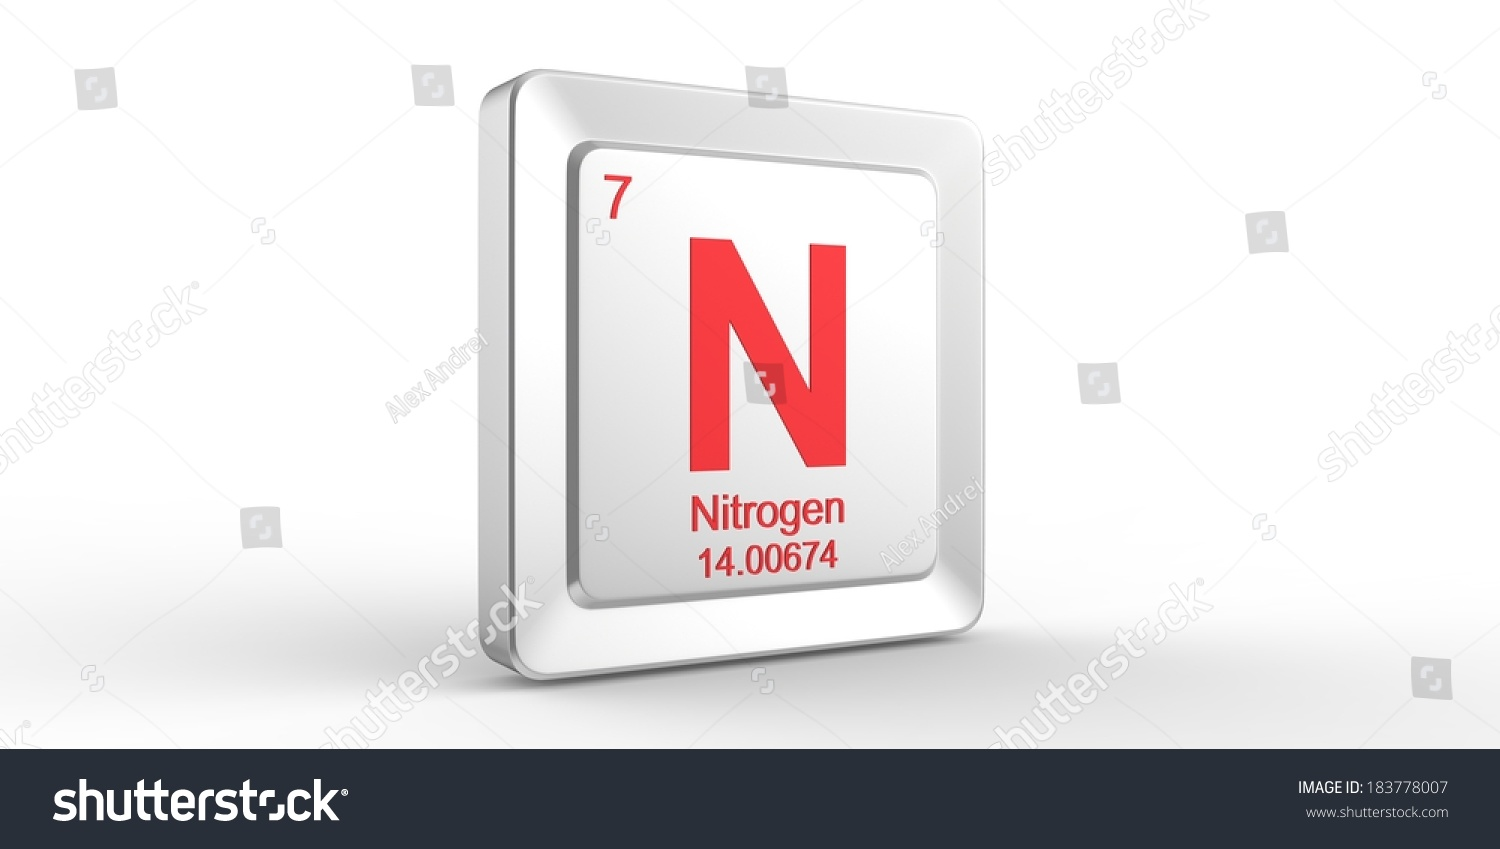 Ar Symbol 18 Material For Argon Chemical Element Of The Periodic